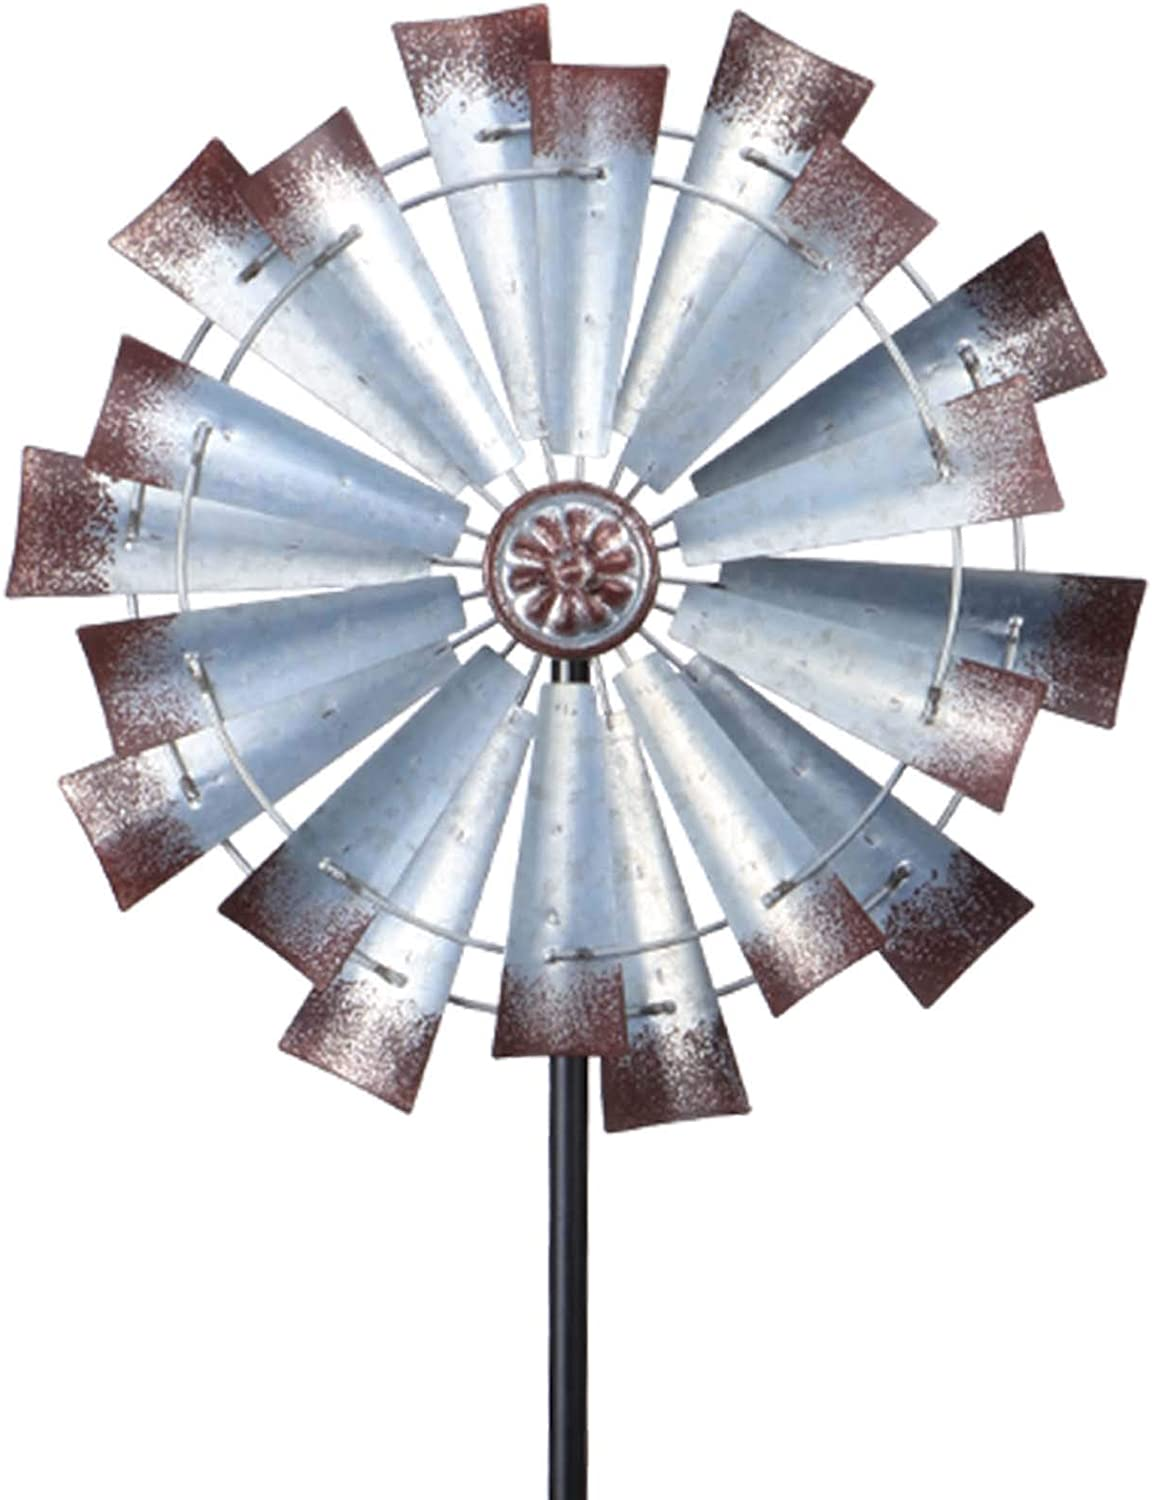 MUMTOP New arrival Wind Spinner Retro Large Two-Way Sculptures Max 68% OFF Enjo for